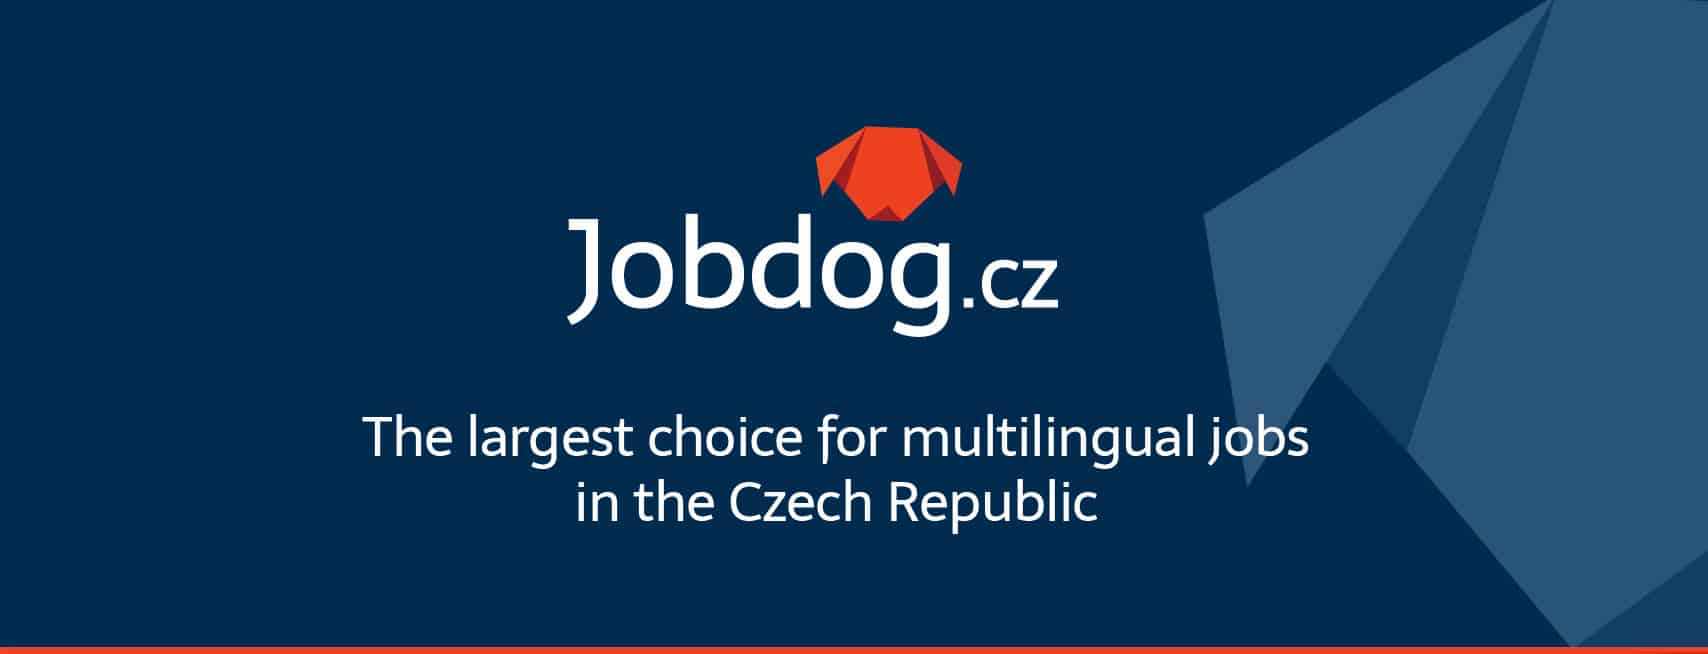 Unemployment Benefit in the Czech Republic